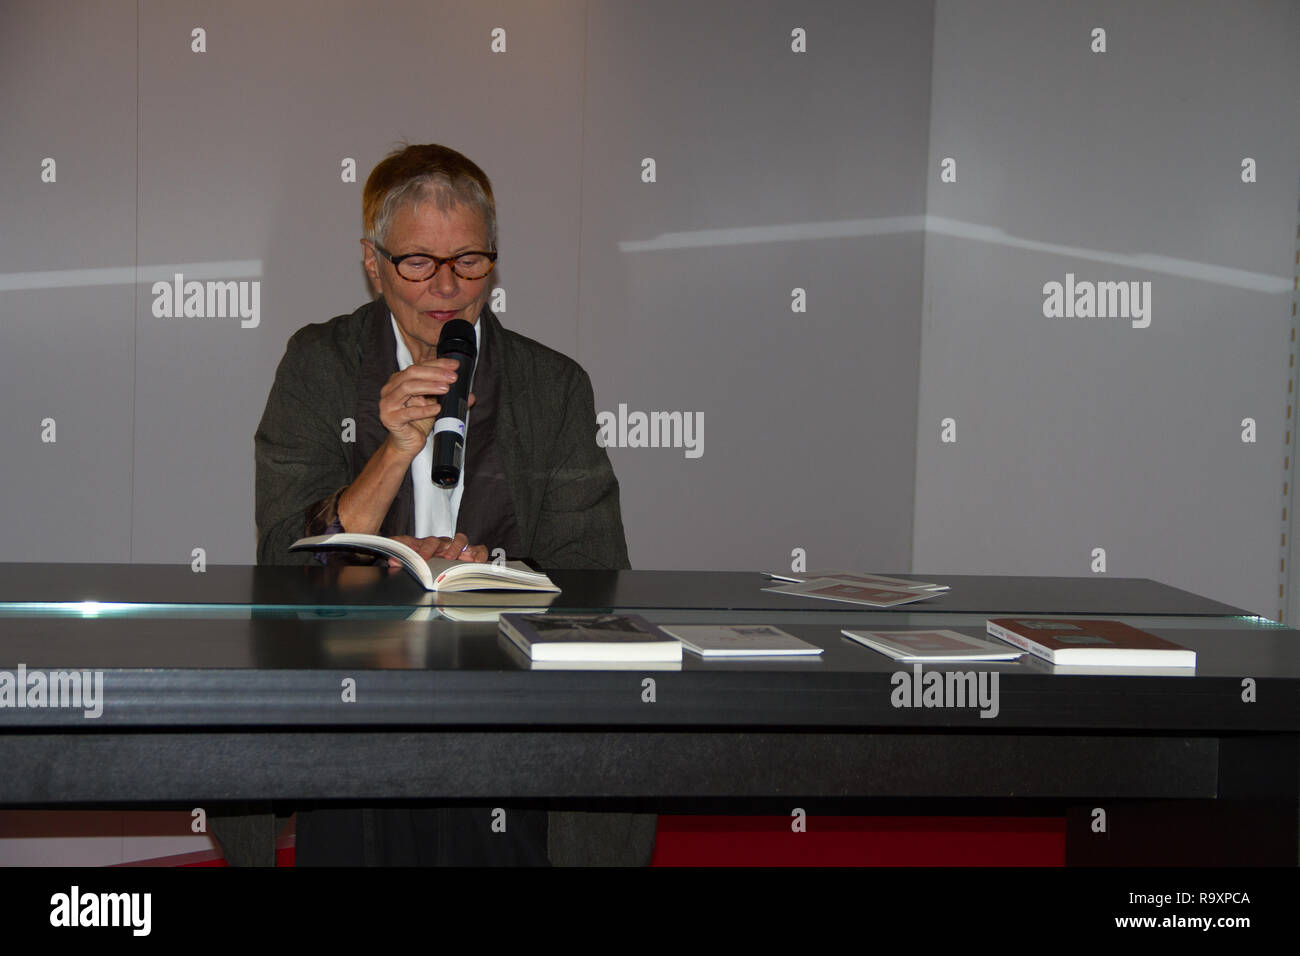 Renate Langgemach presenting the book 'Doppelter Frühling' at the book fair 2016 in frankfurt am main germany - Stock Image